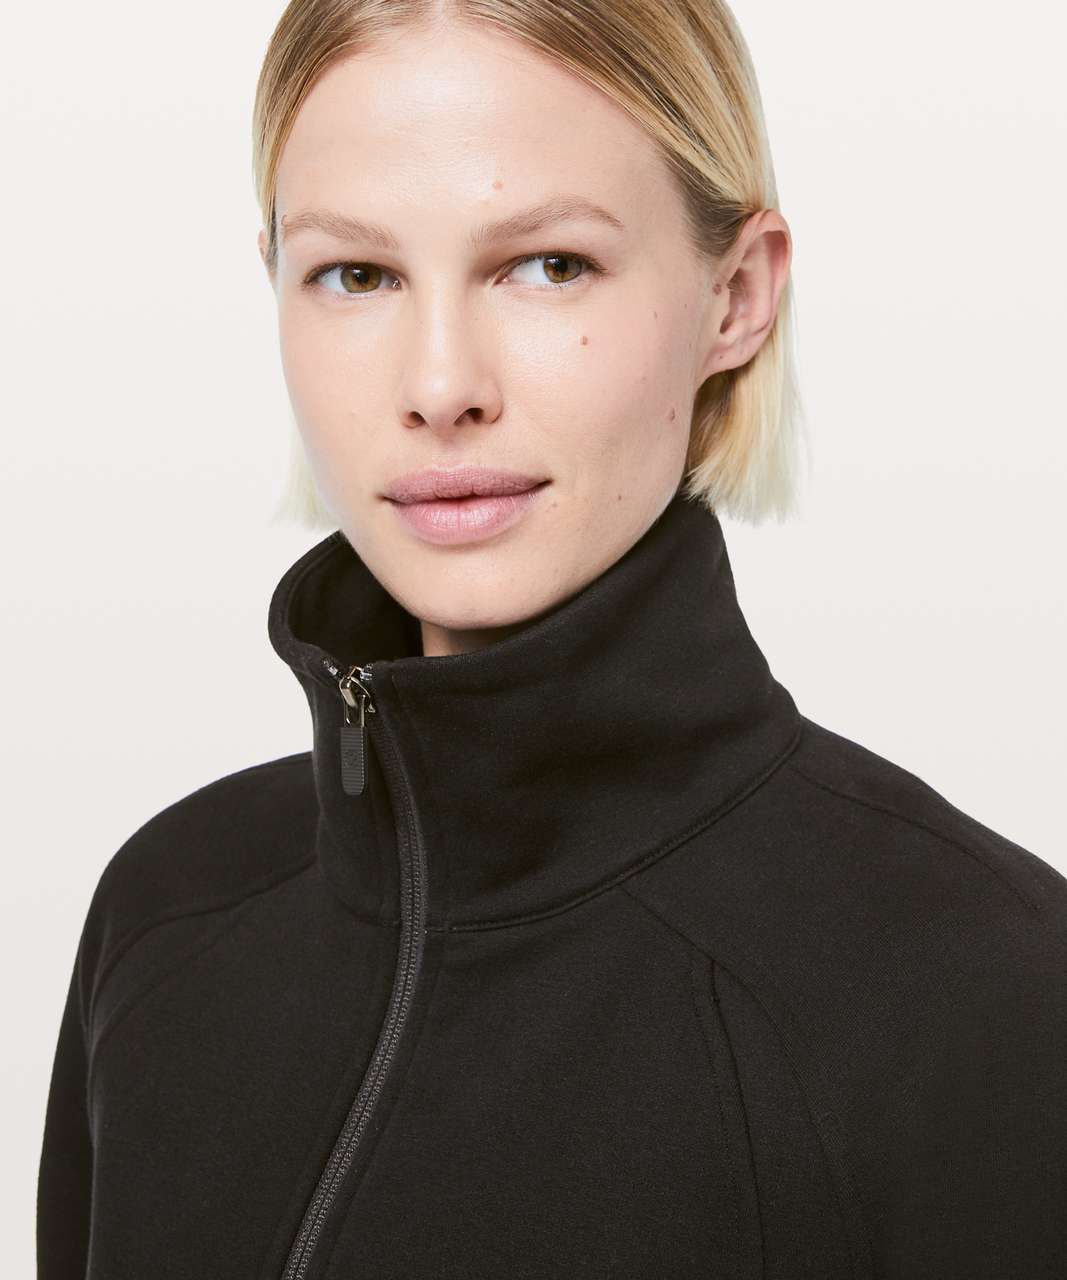 Lululemon Pleat Perfection Jacket - Black